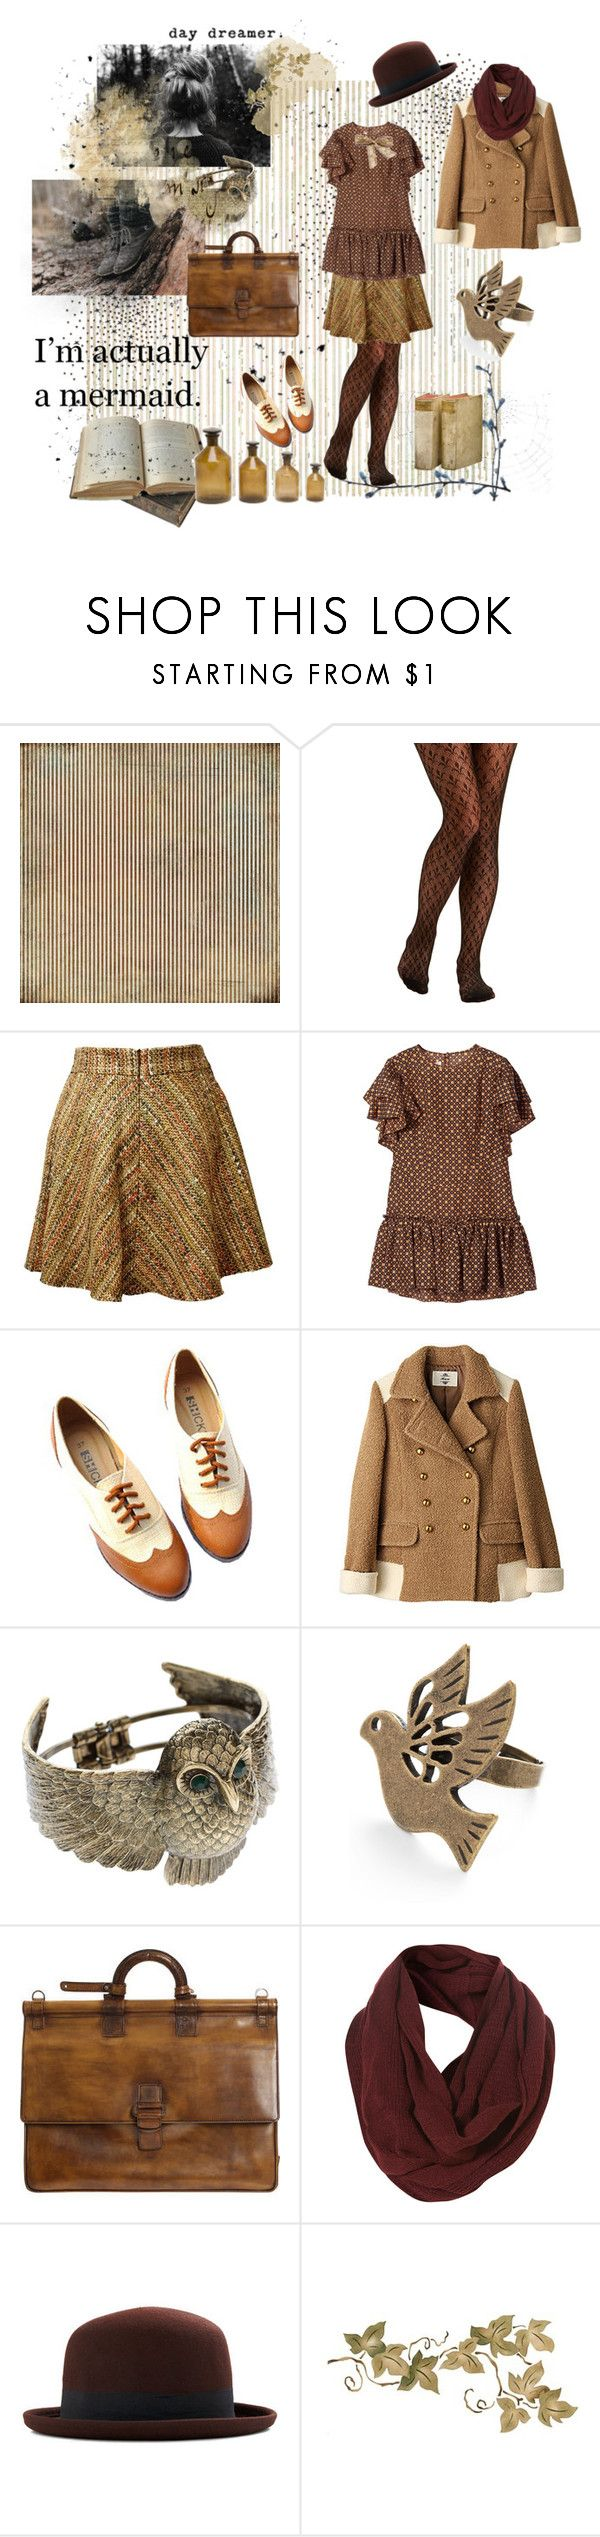 """dreaming of beeing a mermaid"" by whitekirin ❤ liked on Polyvore featuring BasicGrey, Marni, ASOS, Berluti, Topman, Champion, Bocage, LIST, J. Peterman and vintage shabby chic skirt brown oxfords great britain daydreamer books reading school bag study univ"